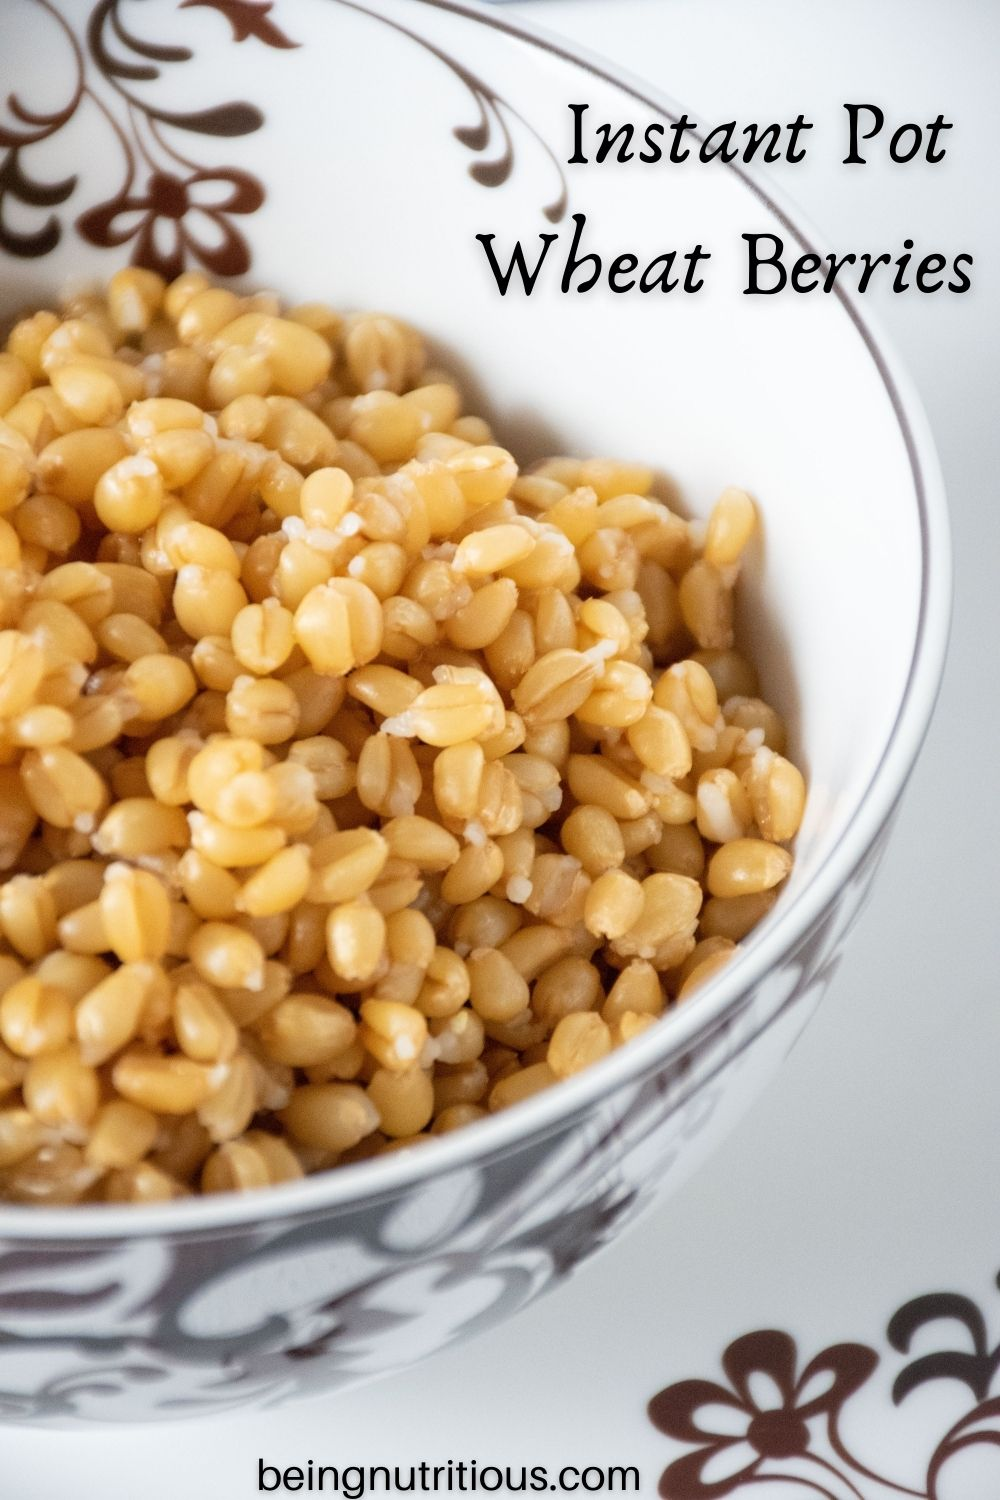 Bowl of cooked wheat berries. Text overlay: Instant Pot Wheat Berries.